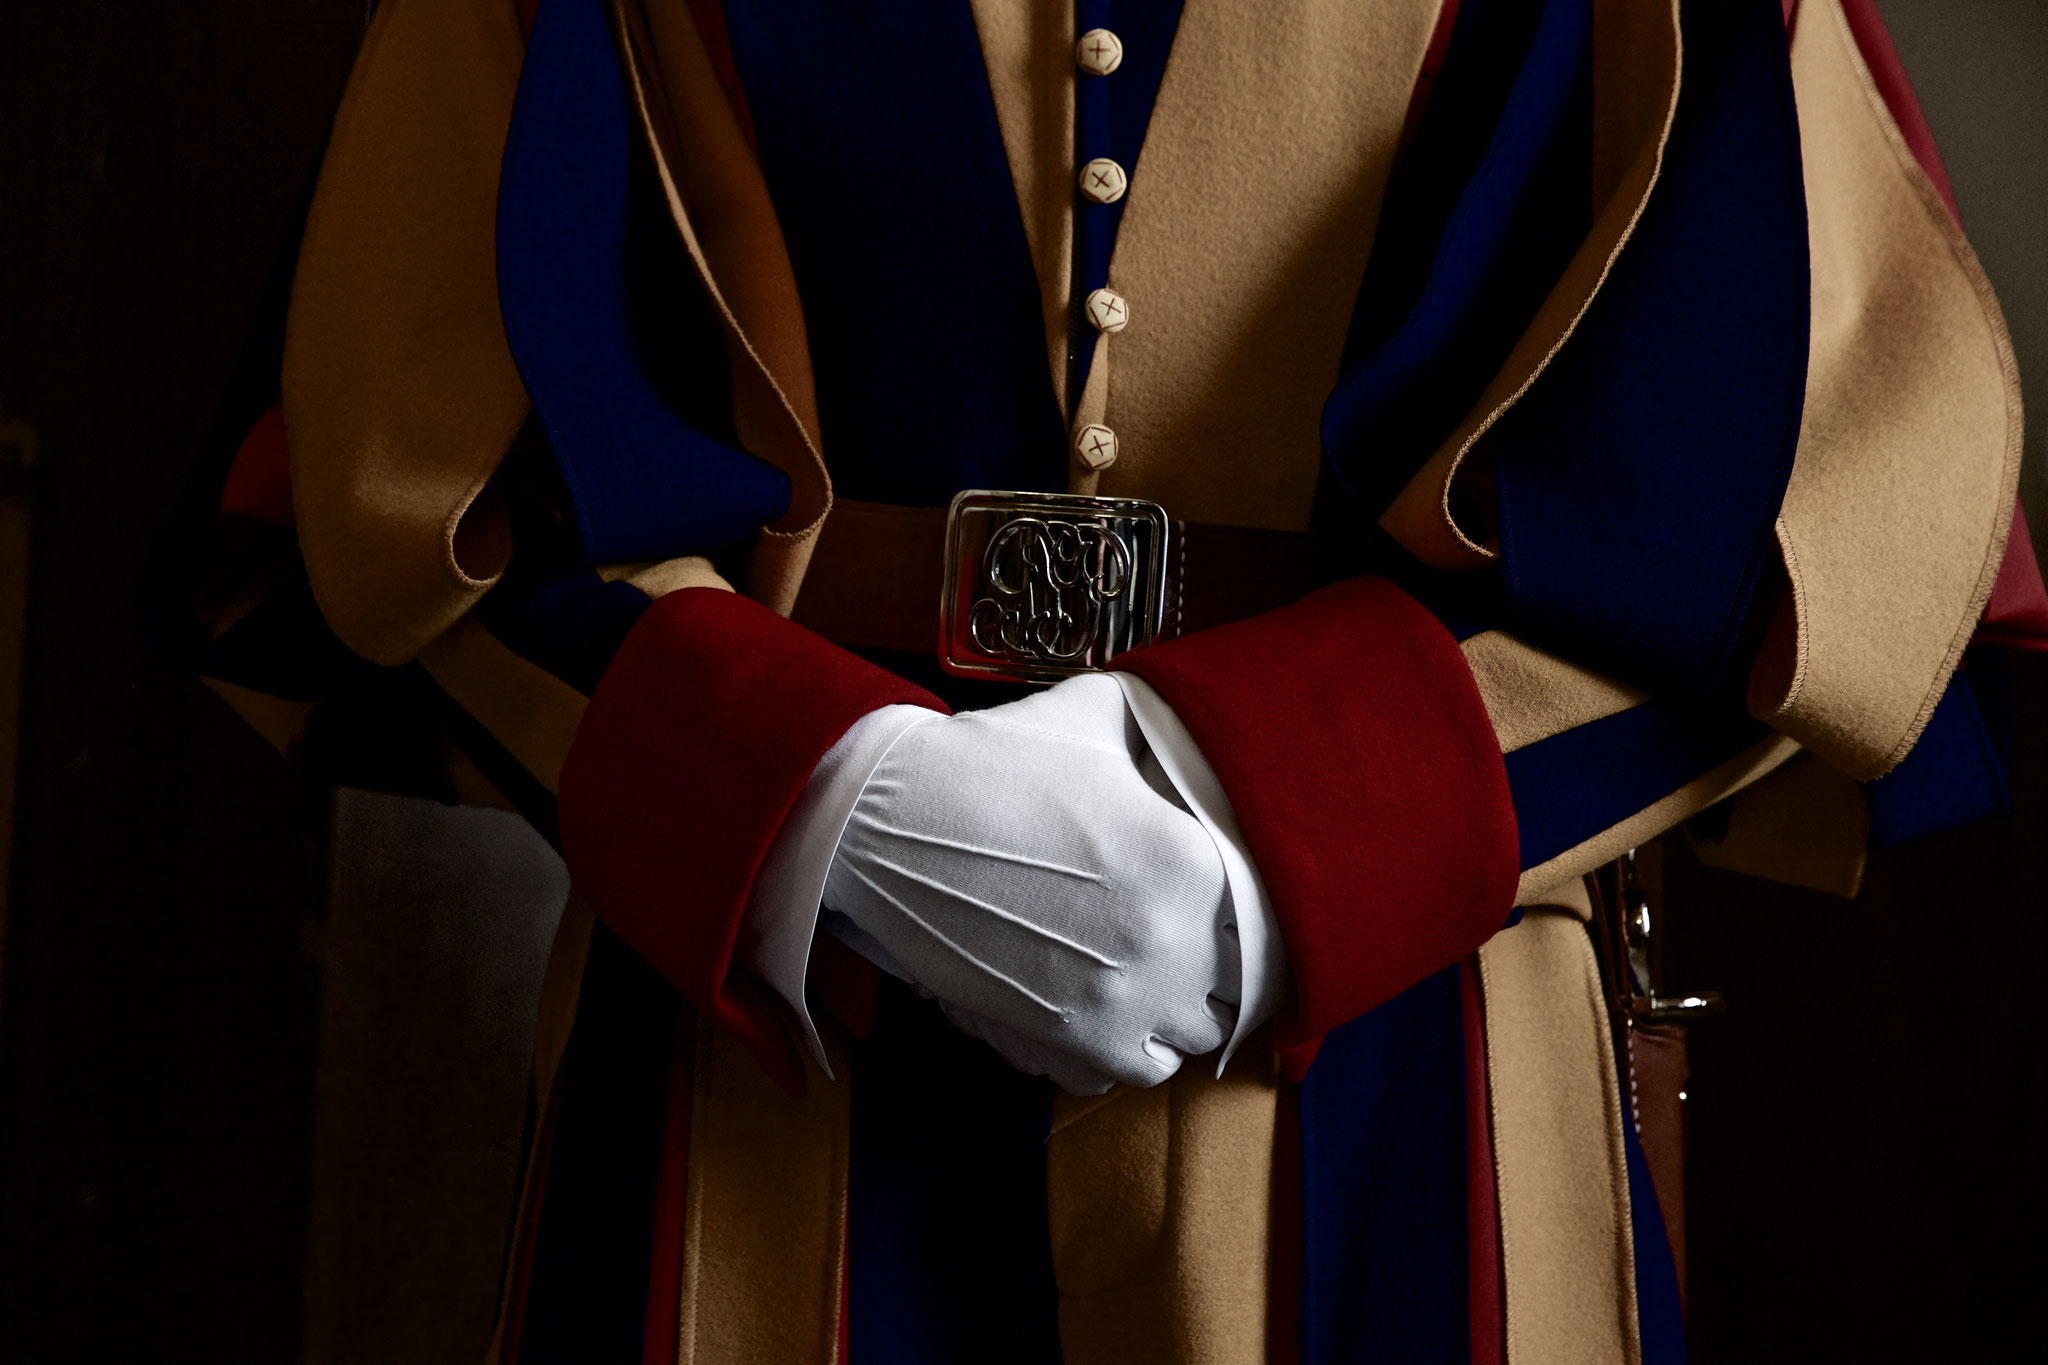 The typical hand position of a Swiss Guard.